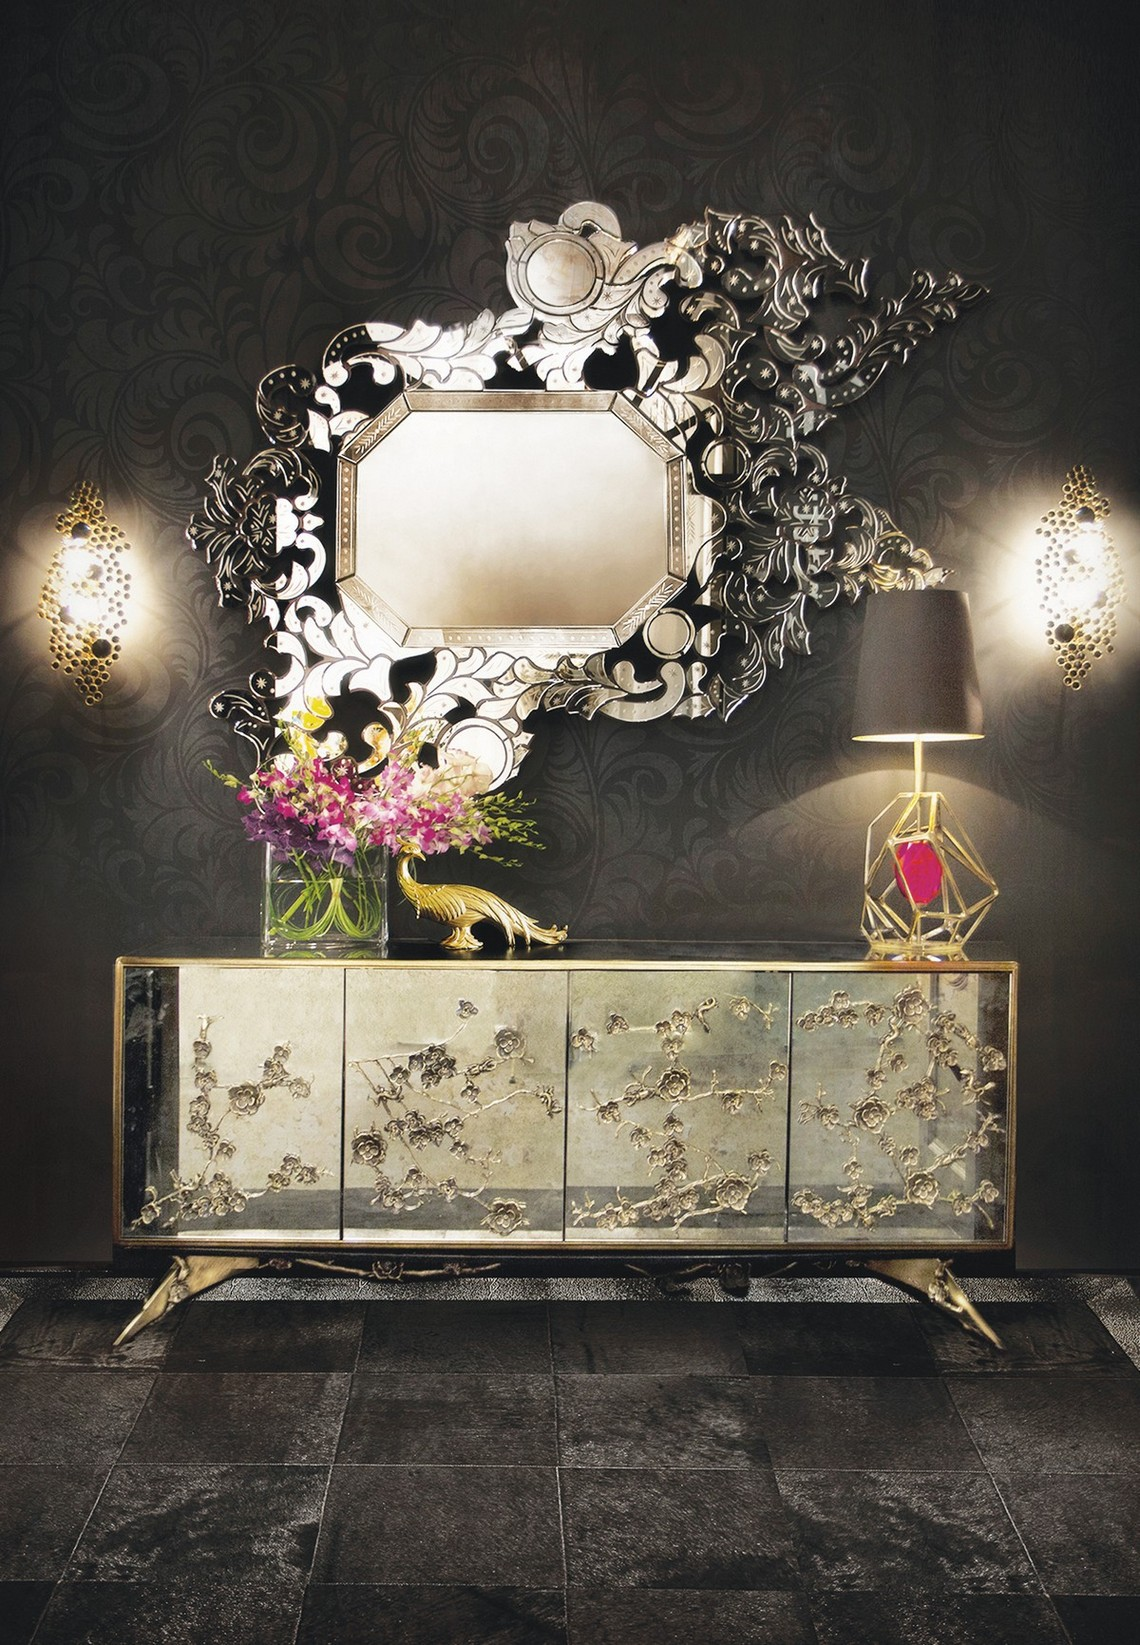 Modern Mirrors To Match Your Sideboard modern mirrors Modern Mirrors To Match Your Sideboard (Part II) addicta